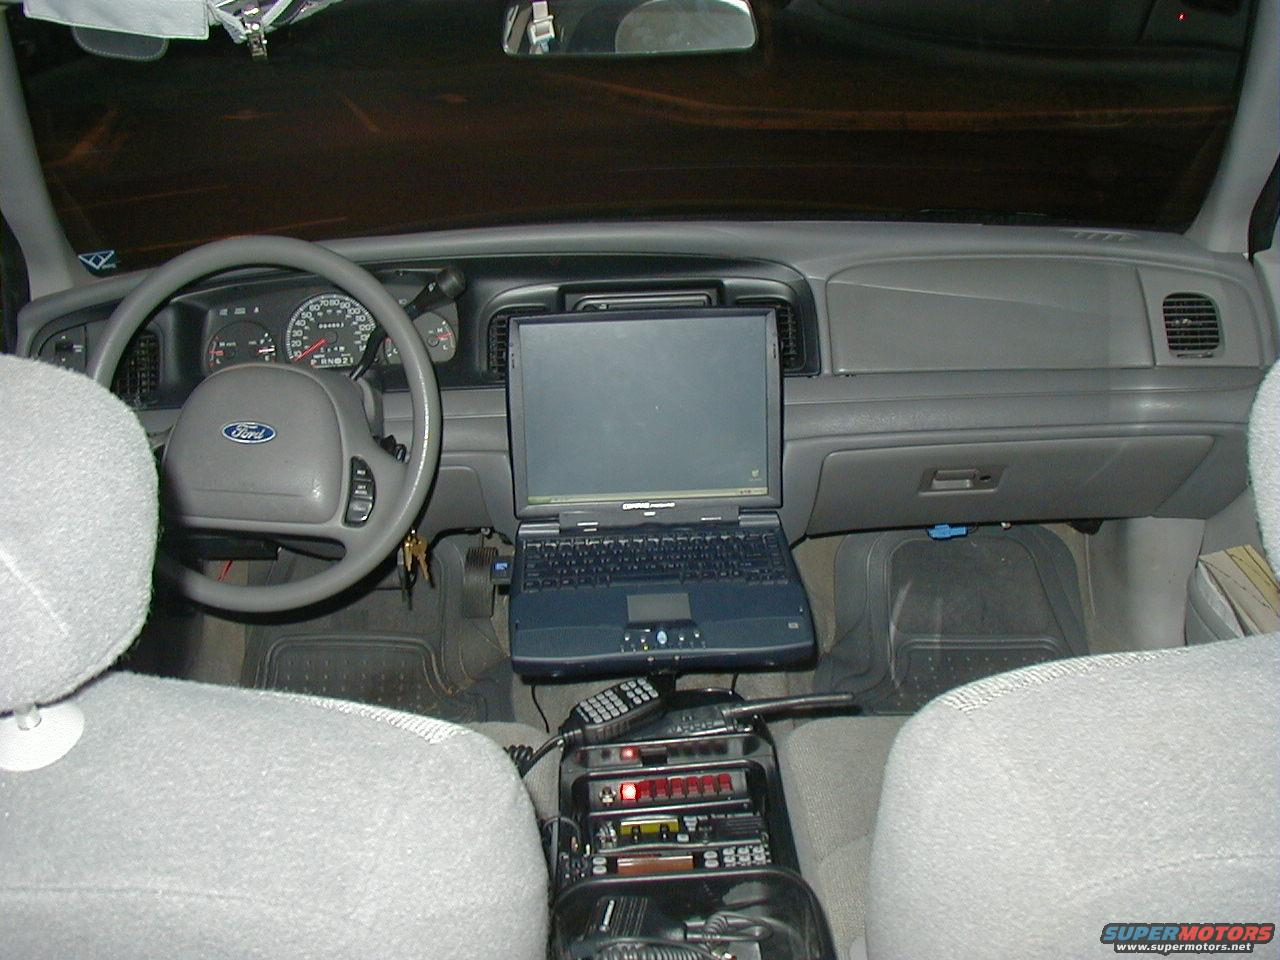 2001 Ford Crown Victoria Interior picture | SuperMotors.net